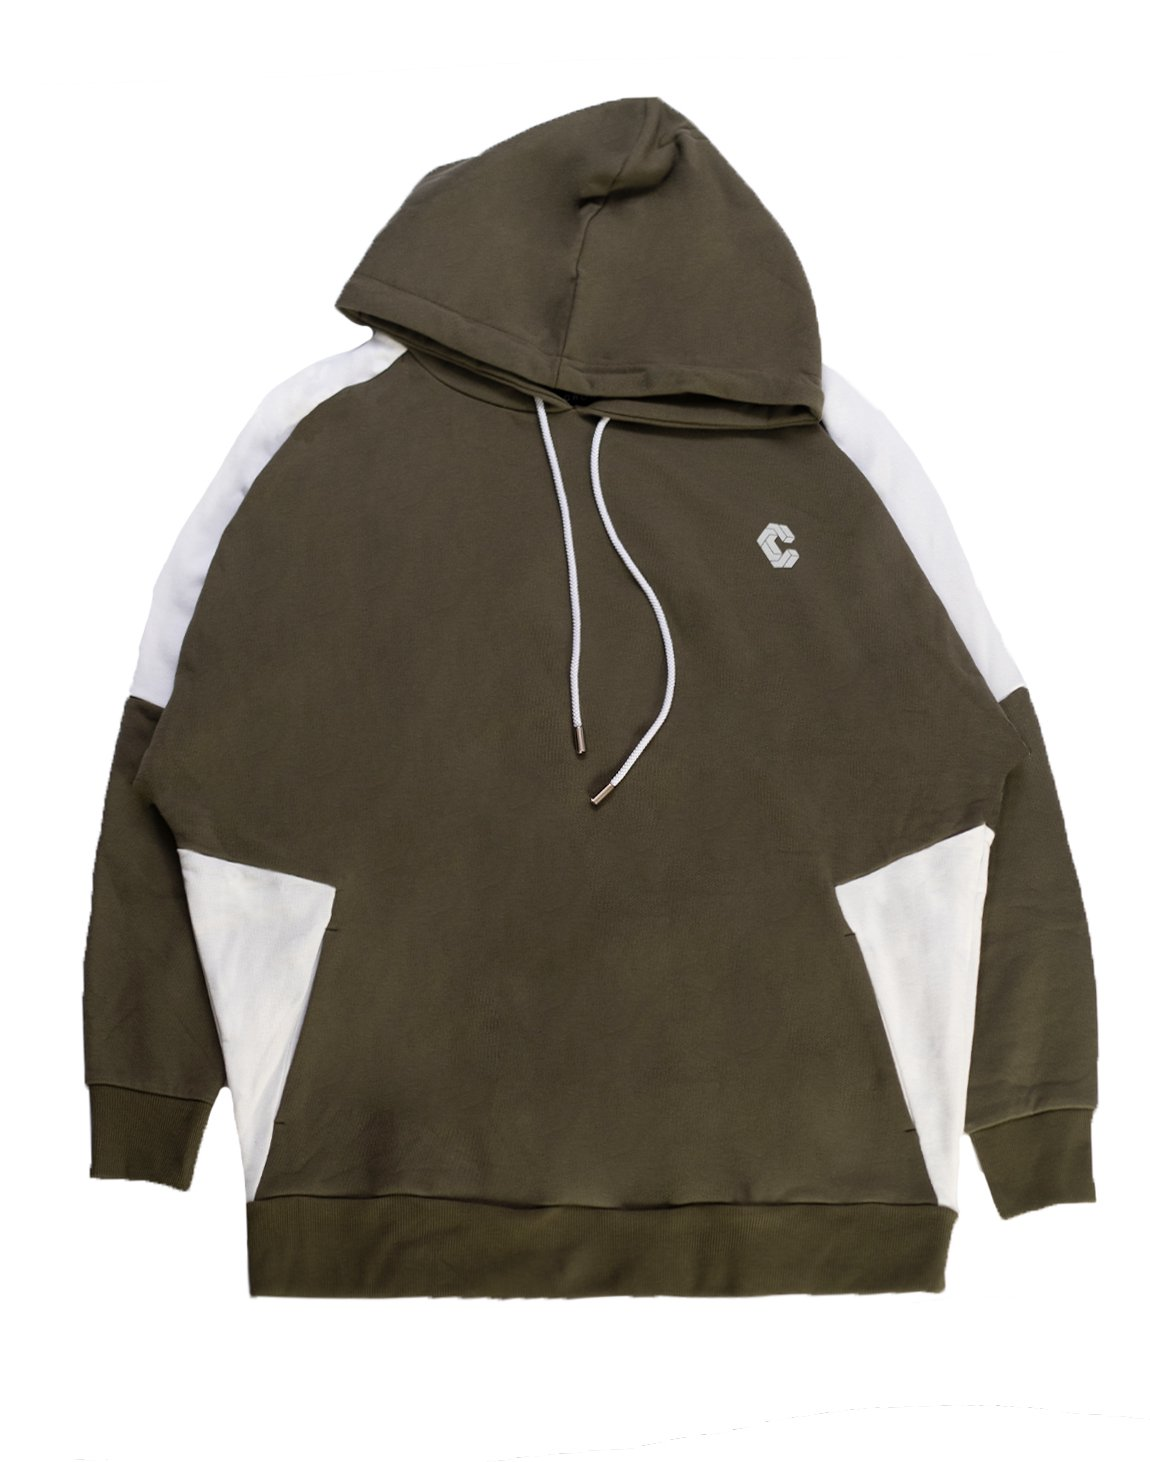 <img class='new_mark_img1' src='https://img.shop-pro.jp/img/new/icons55.gif' style='border:none;display:inline;margin:0px;padding:0px;width:auto;' />CRONOS NEW SHOULDER COLOR HOODY【KHAKI×WHITE】